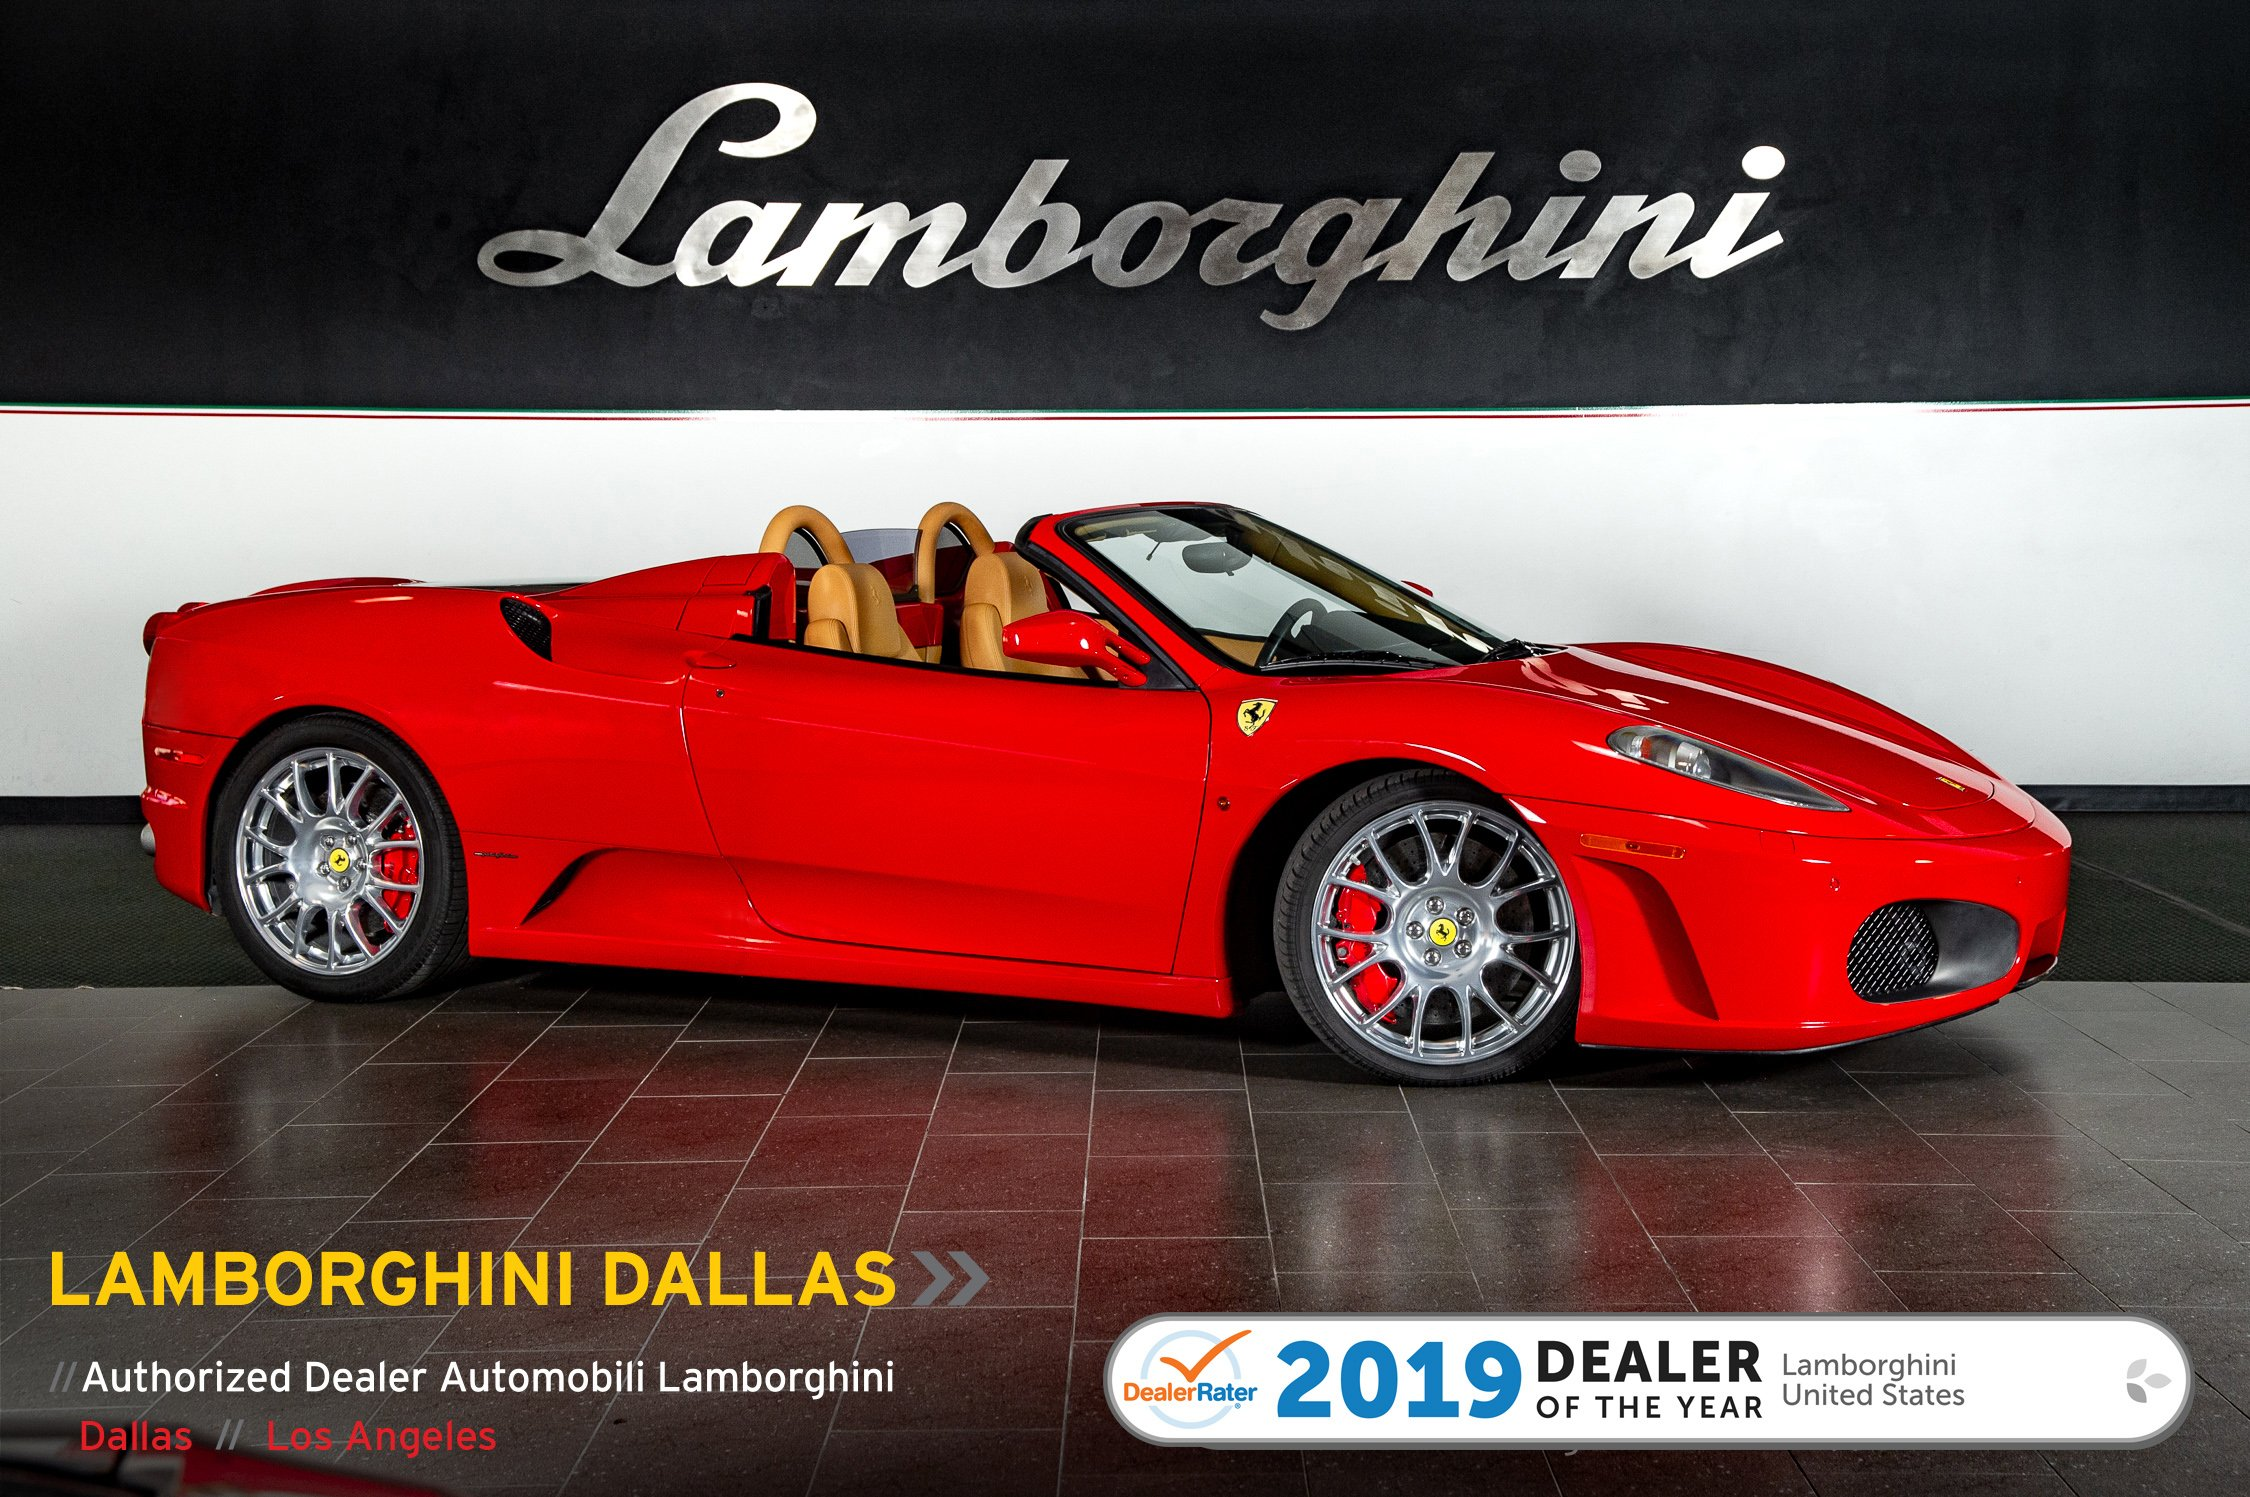 Used 2007 Ferrari F430 Spider For Sale Richardson Tx Stock Lc592 Vin Zffew59a270152015